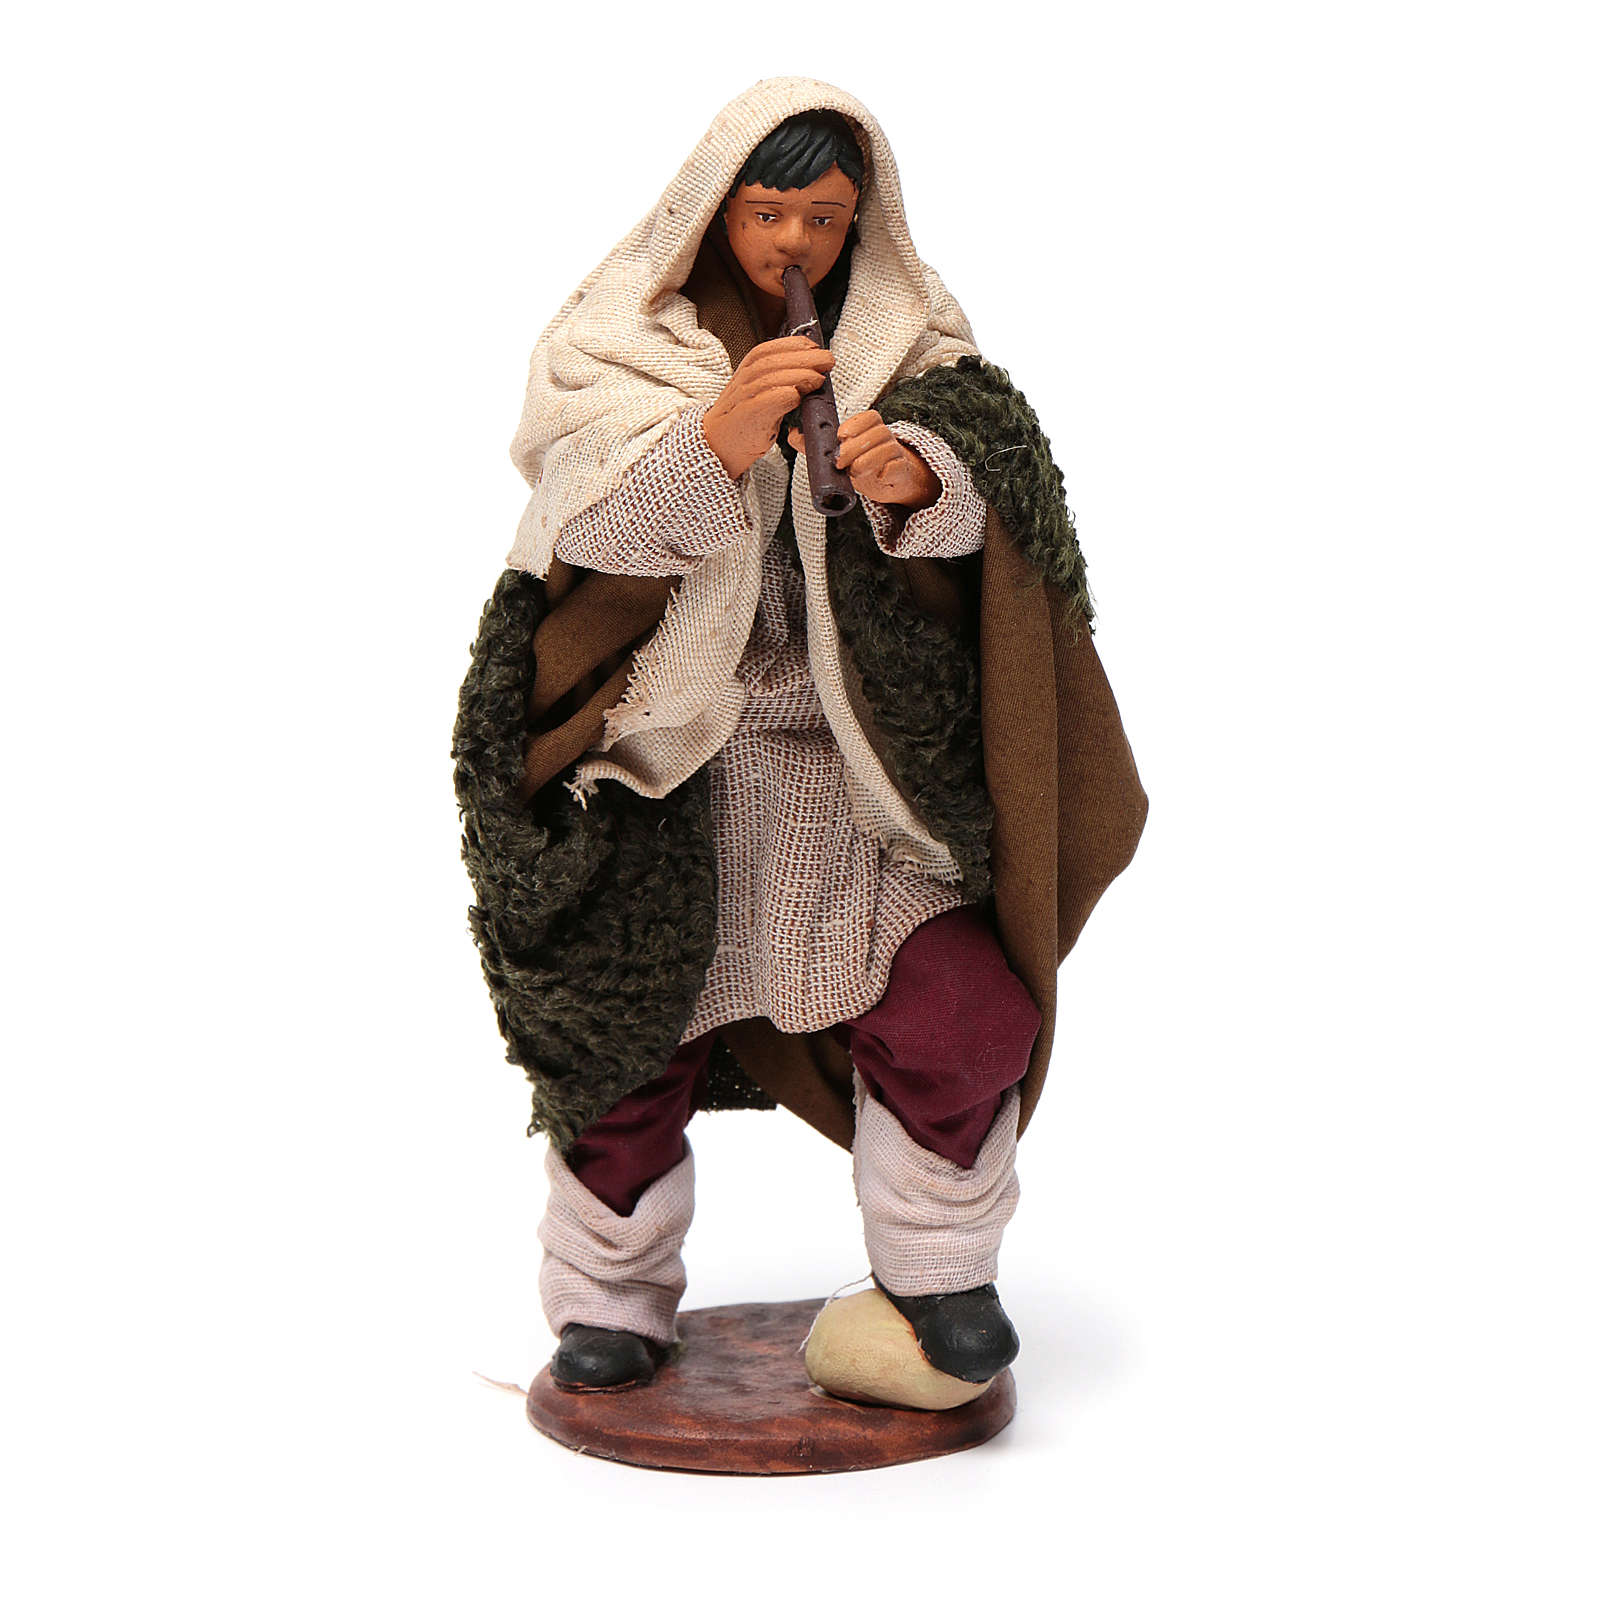 Nativity set accessory fifer 14 cm figurine 4